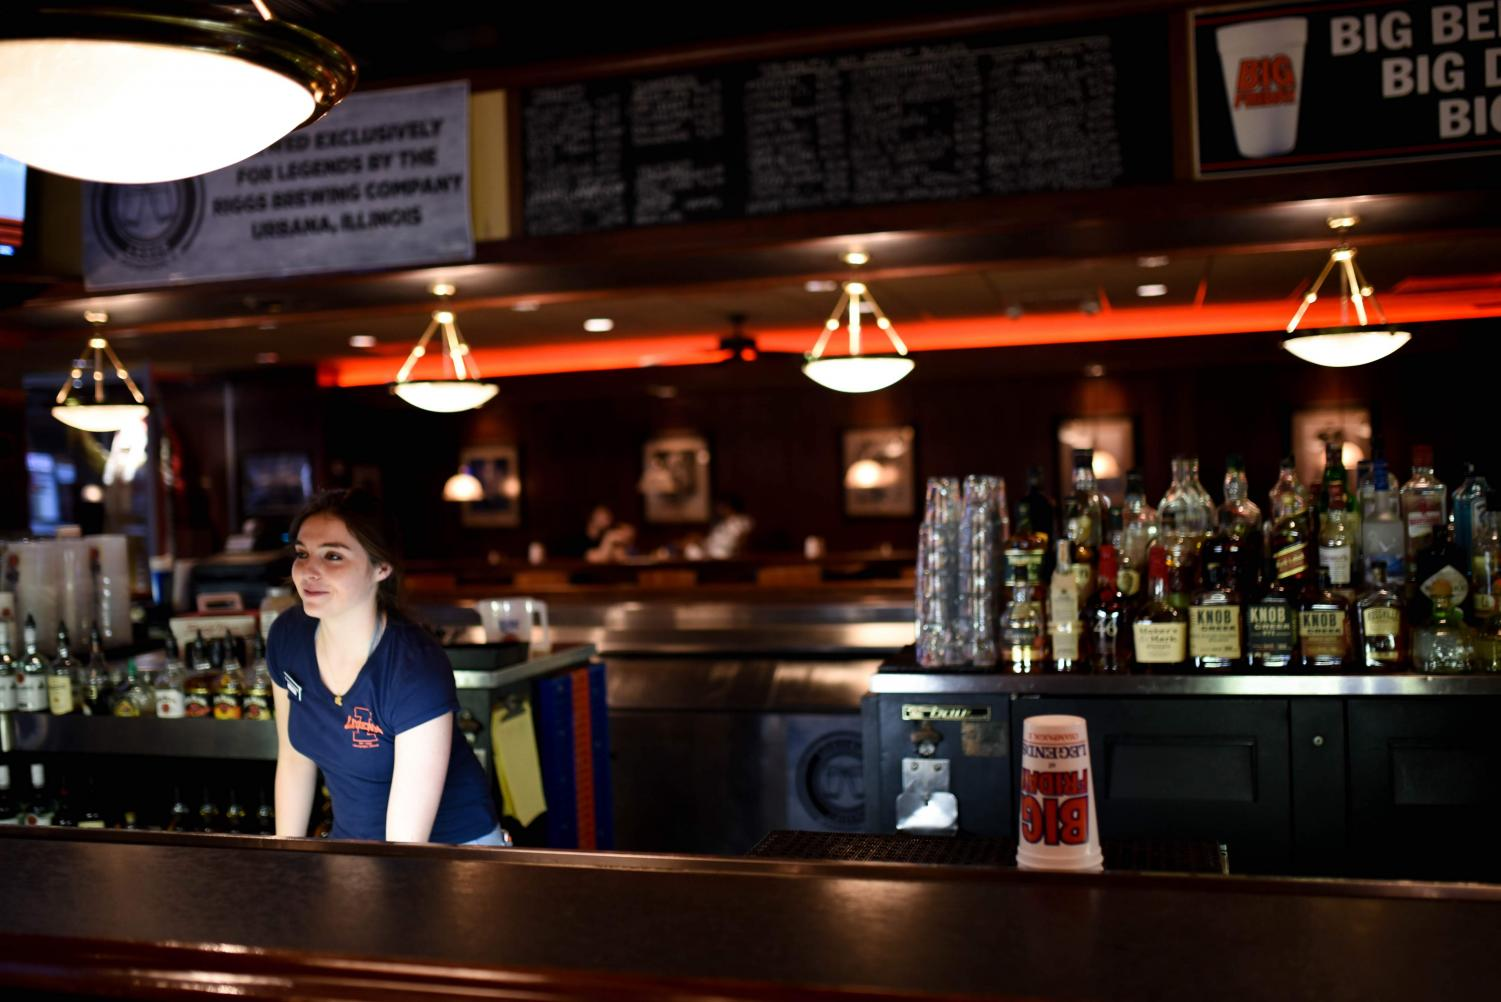 Annie Mokate, senior in AHS, prepares a drink for a customer at Legends Bar and Grill in Champaign on Feb. 22.